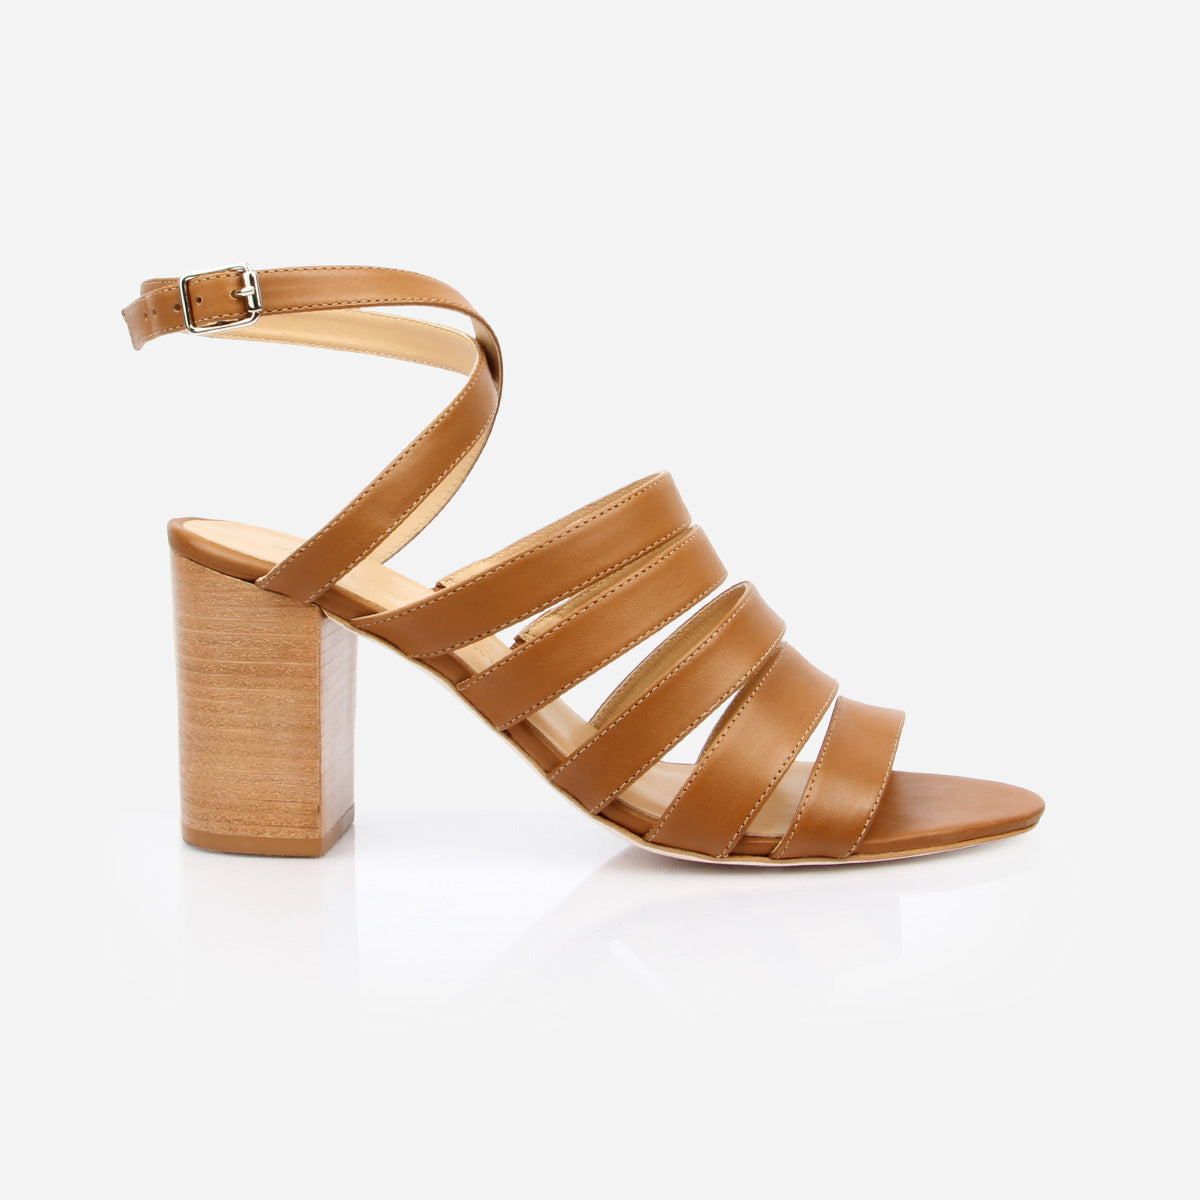 The Victoria Heeled Sandal in Almond - Poppy Barley